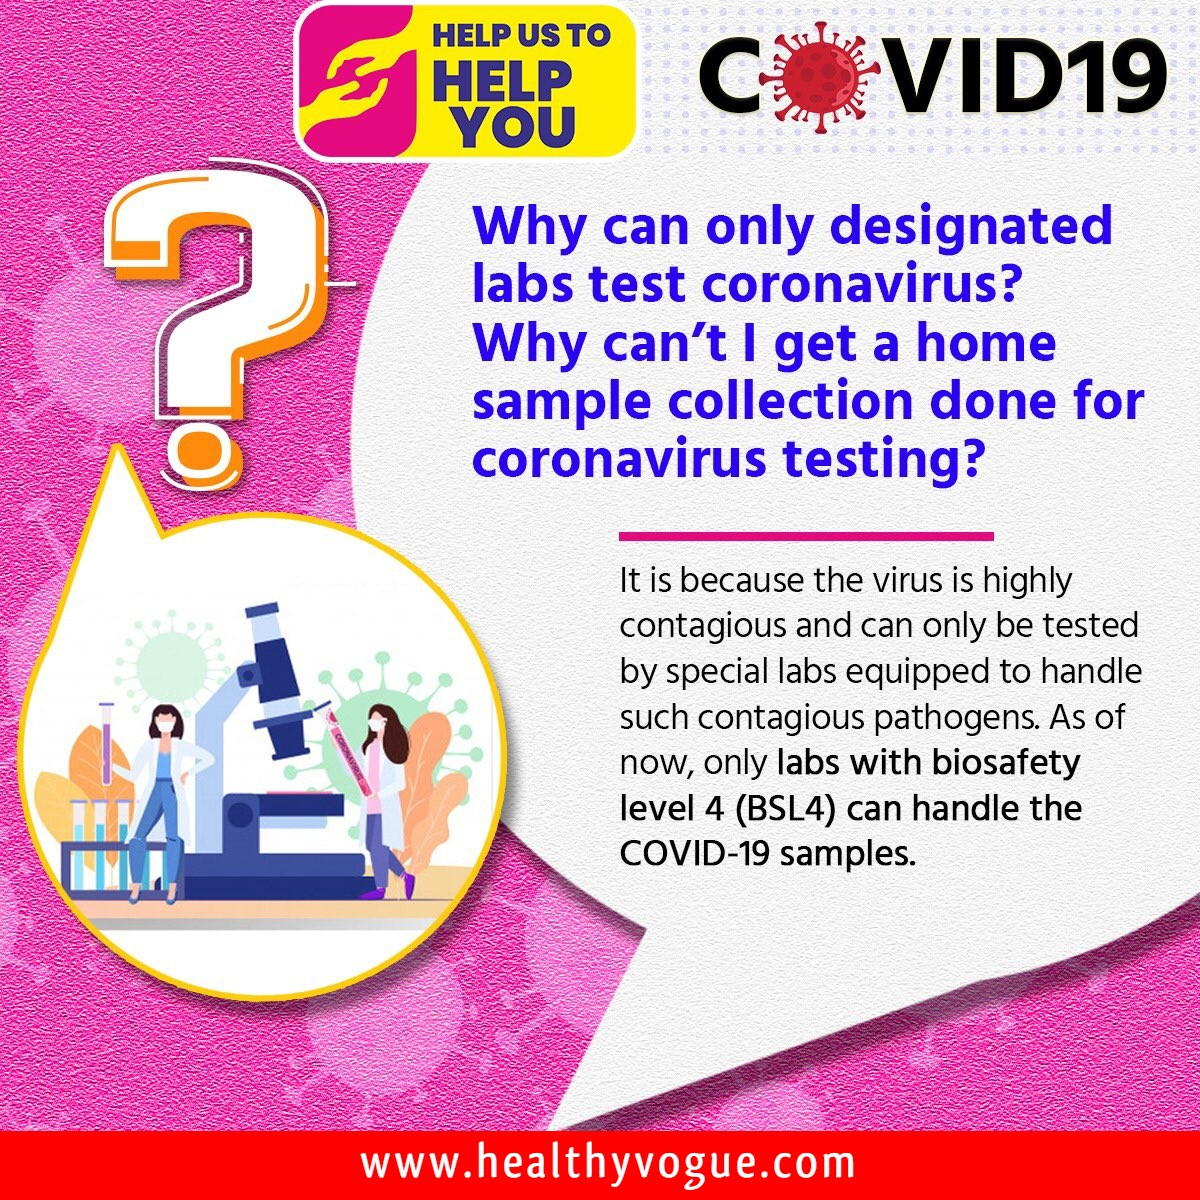 Why can only designated labs test coronavirus? Why can't I get a home sample collection done for coronavirus testing?